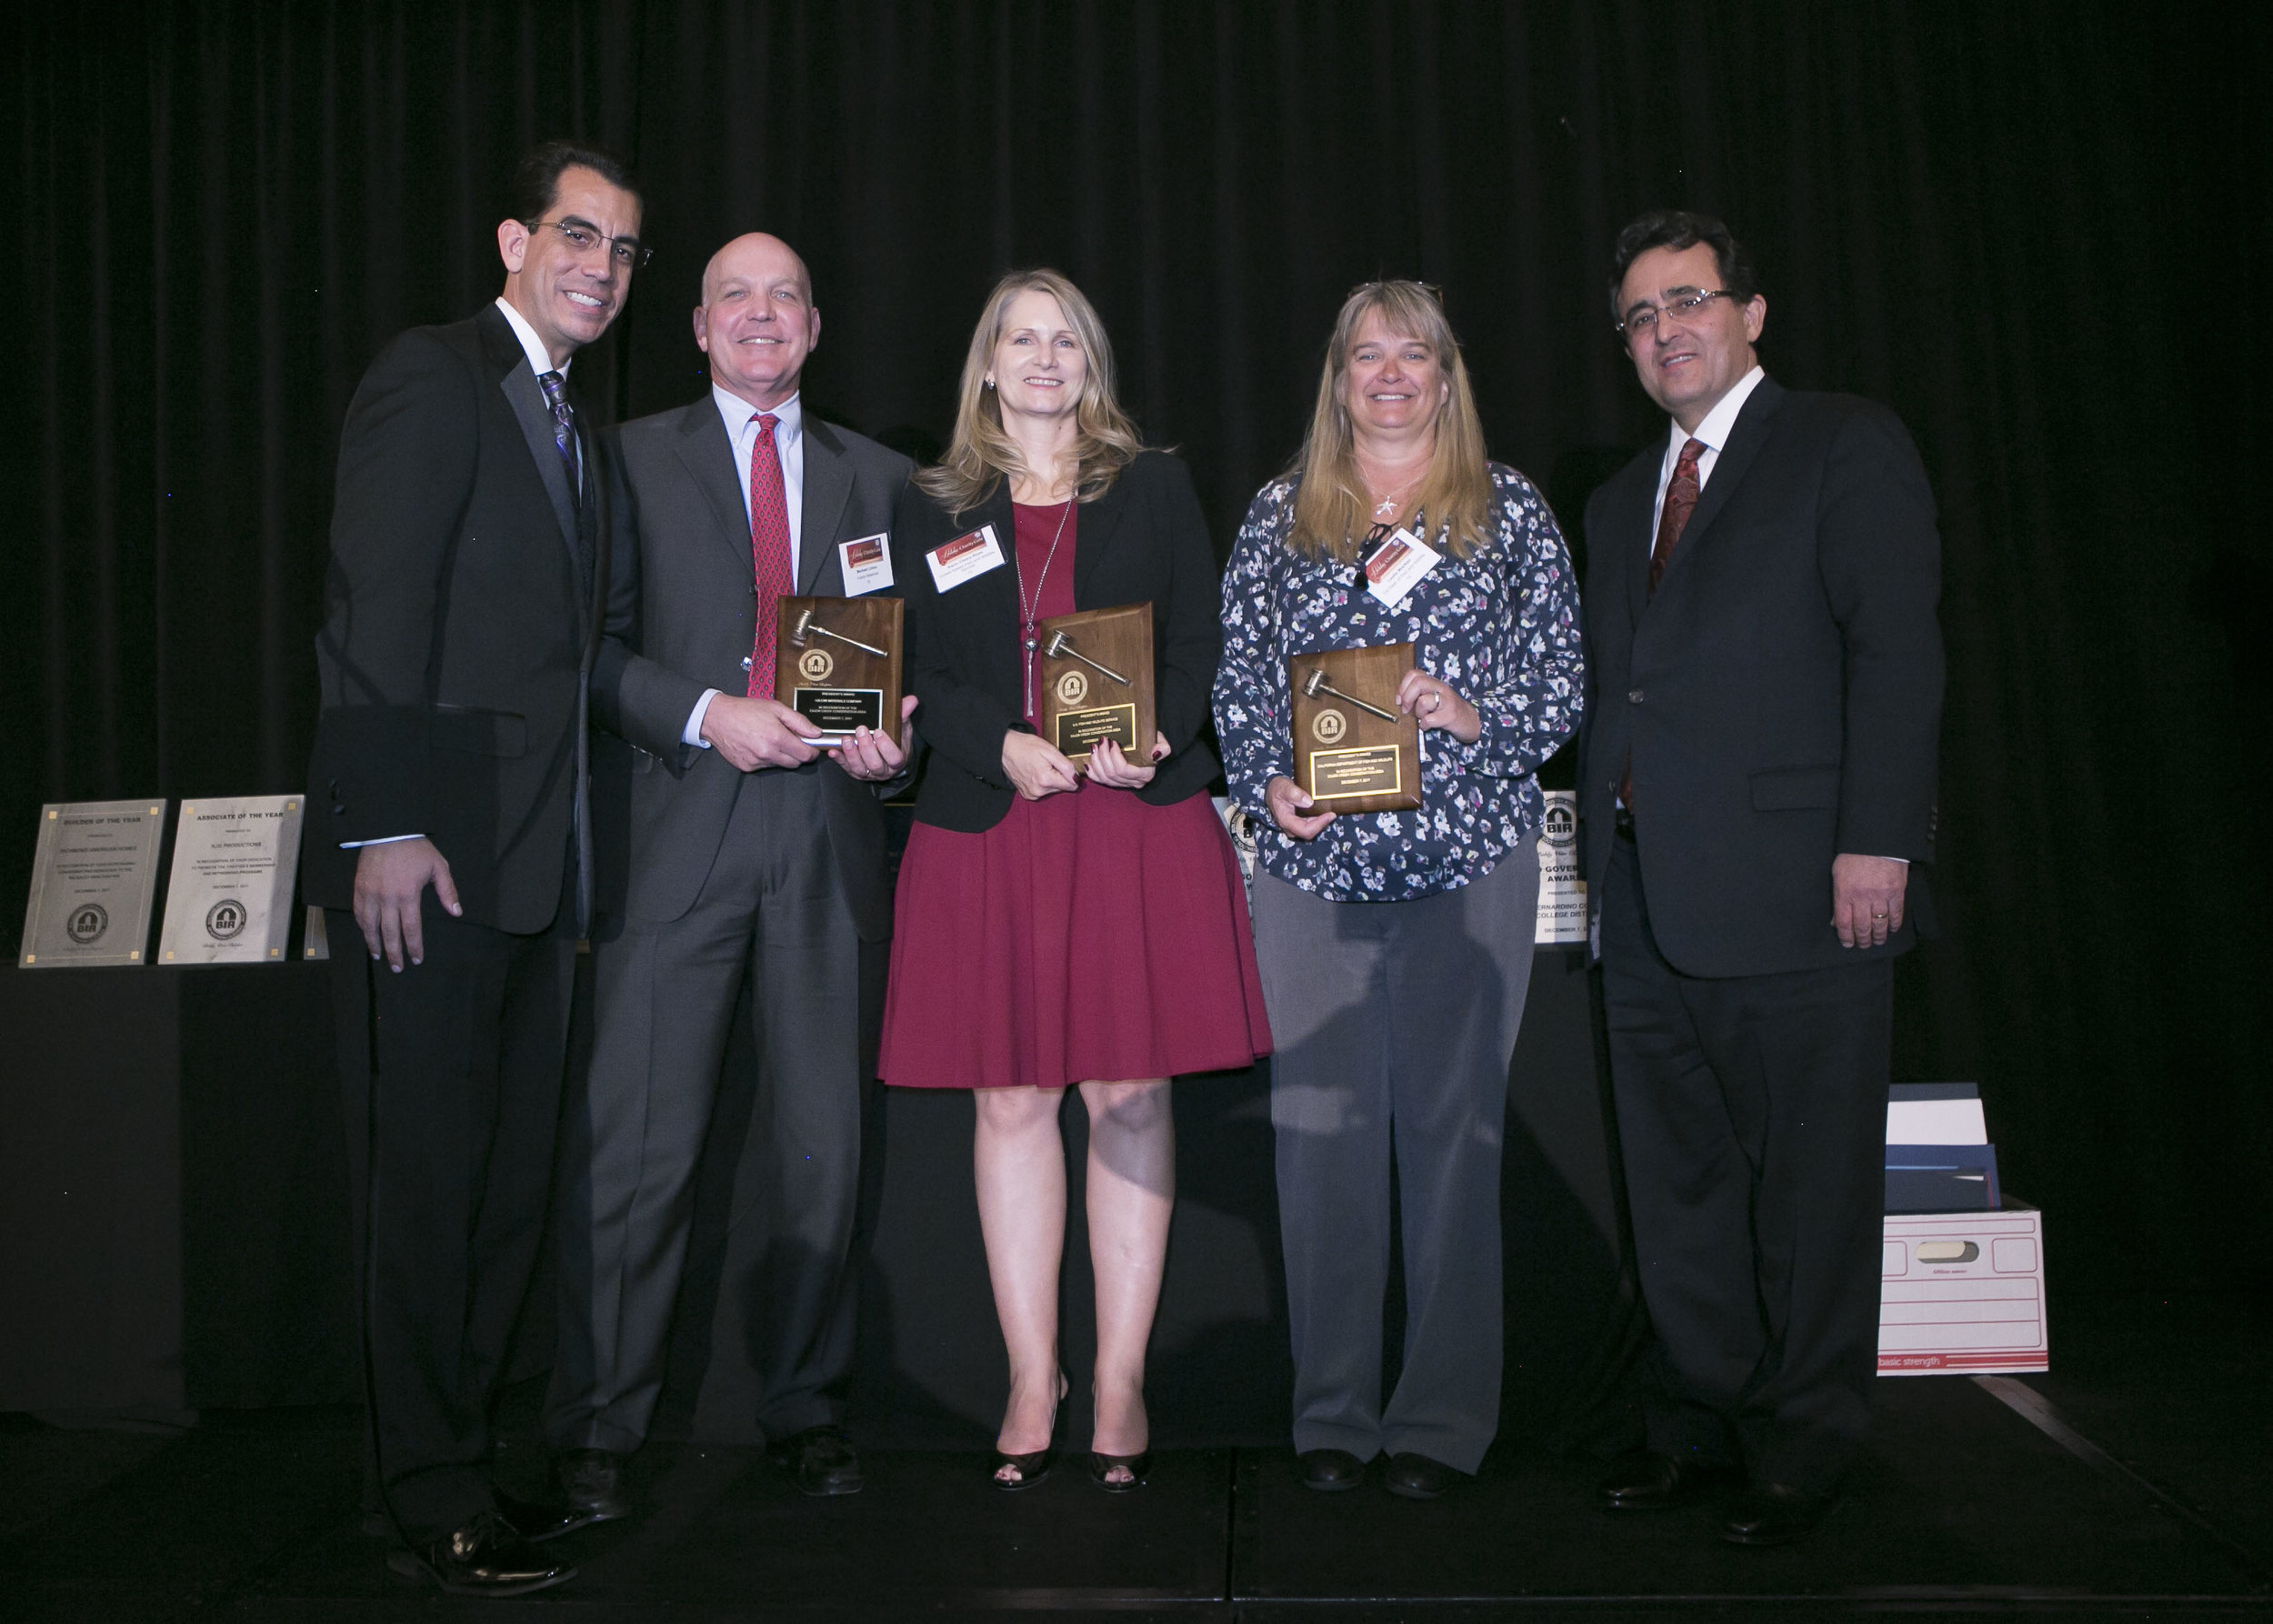 <b>PRESIDENT'S AWARD</b><br>Cajon Creek Conservation Area; Vulcan Materials Company, California Department of Fish and Wildlife, U.S. Fish & Wildlife Service and U.S. Army Corp of Engineers